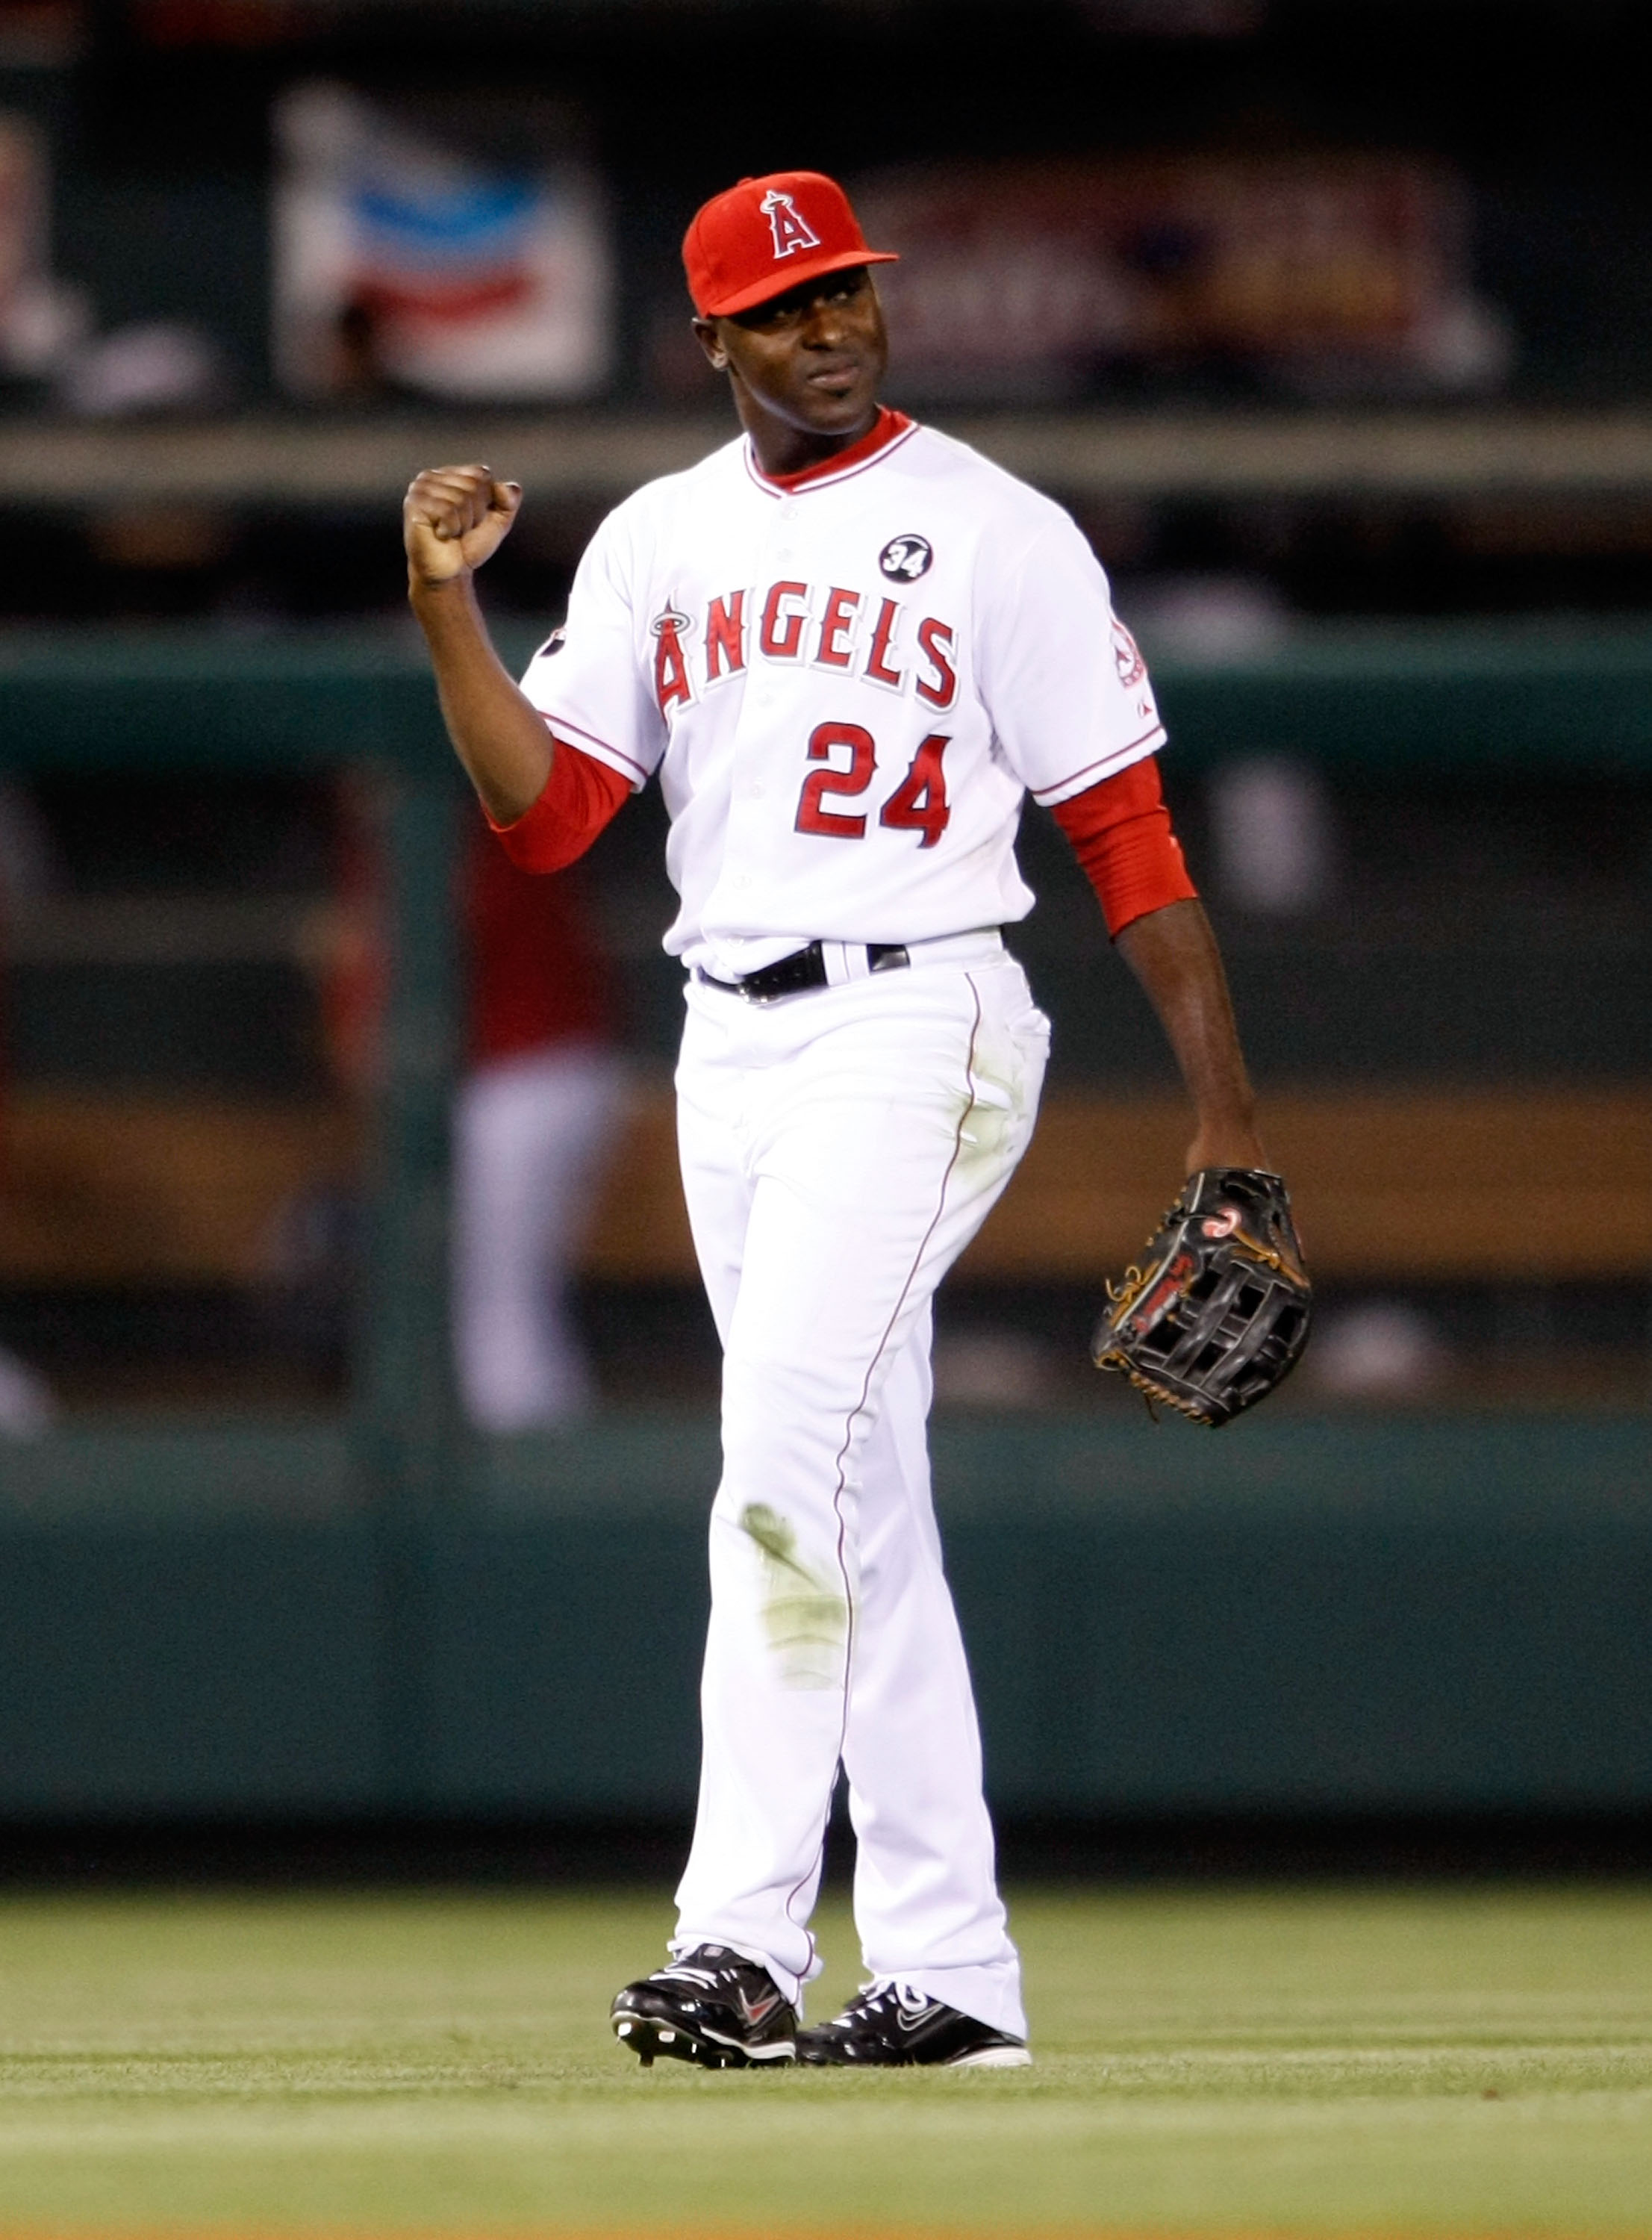 ANAHEIM, CA - AUGUST 10:  Gary Matthews Jr. #24 of the Los Angeles Angels of Anaheim celebrates following the Angels' 8-7 victory over the Tampa Bay Rays at Angel Stadium on August 10, 2009 in Anaheim, California.  (Photo by Jeff Gross/Getty Images)